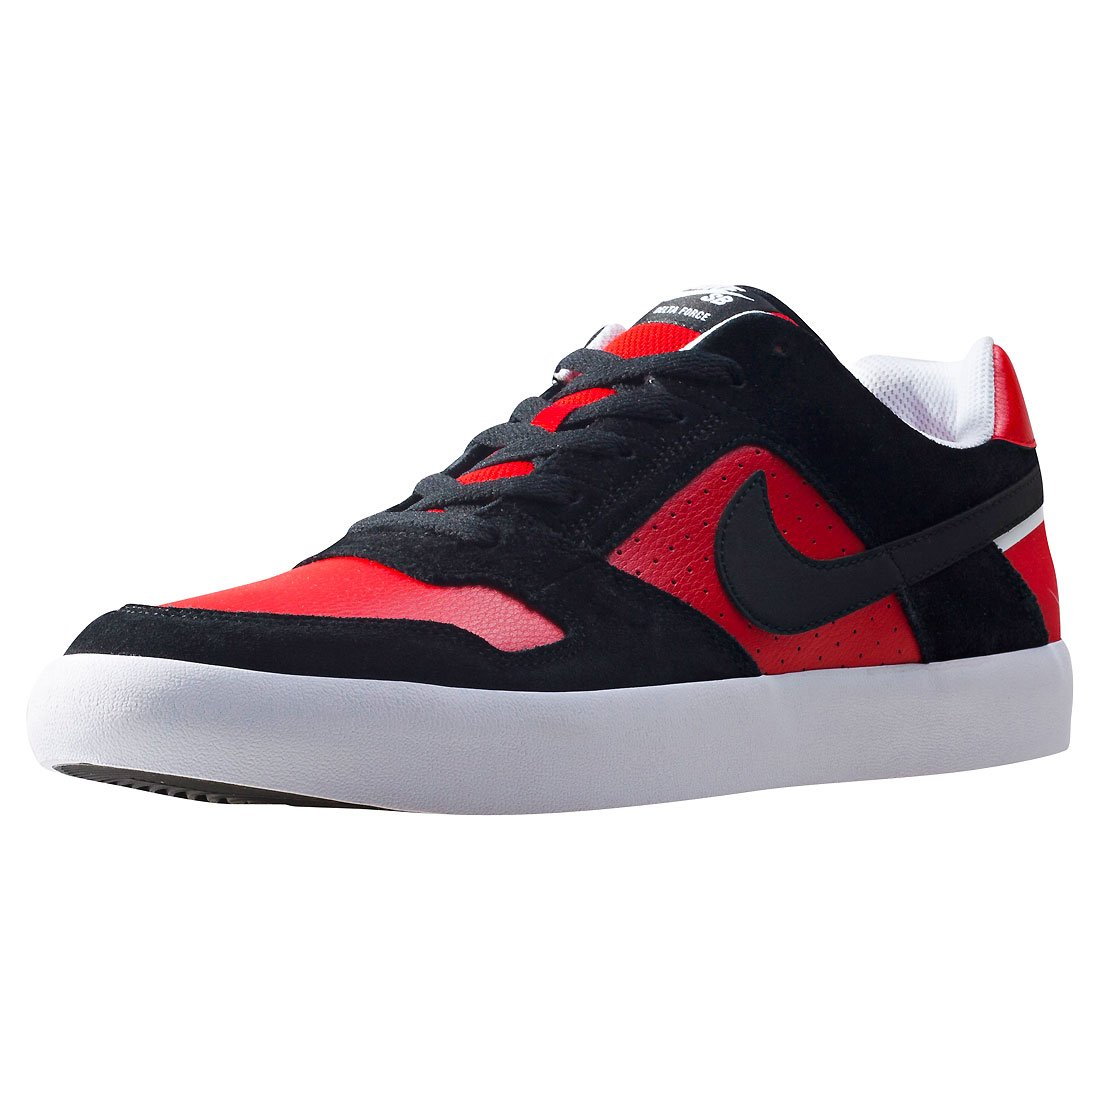 NIKE Men's SB Delta Force Vulc Skate Shoe 9 D(M) US|Black Black University Red Wht